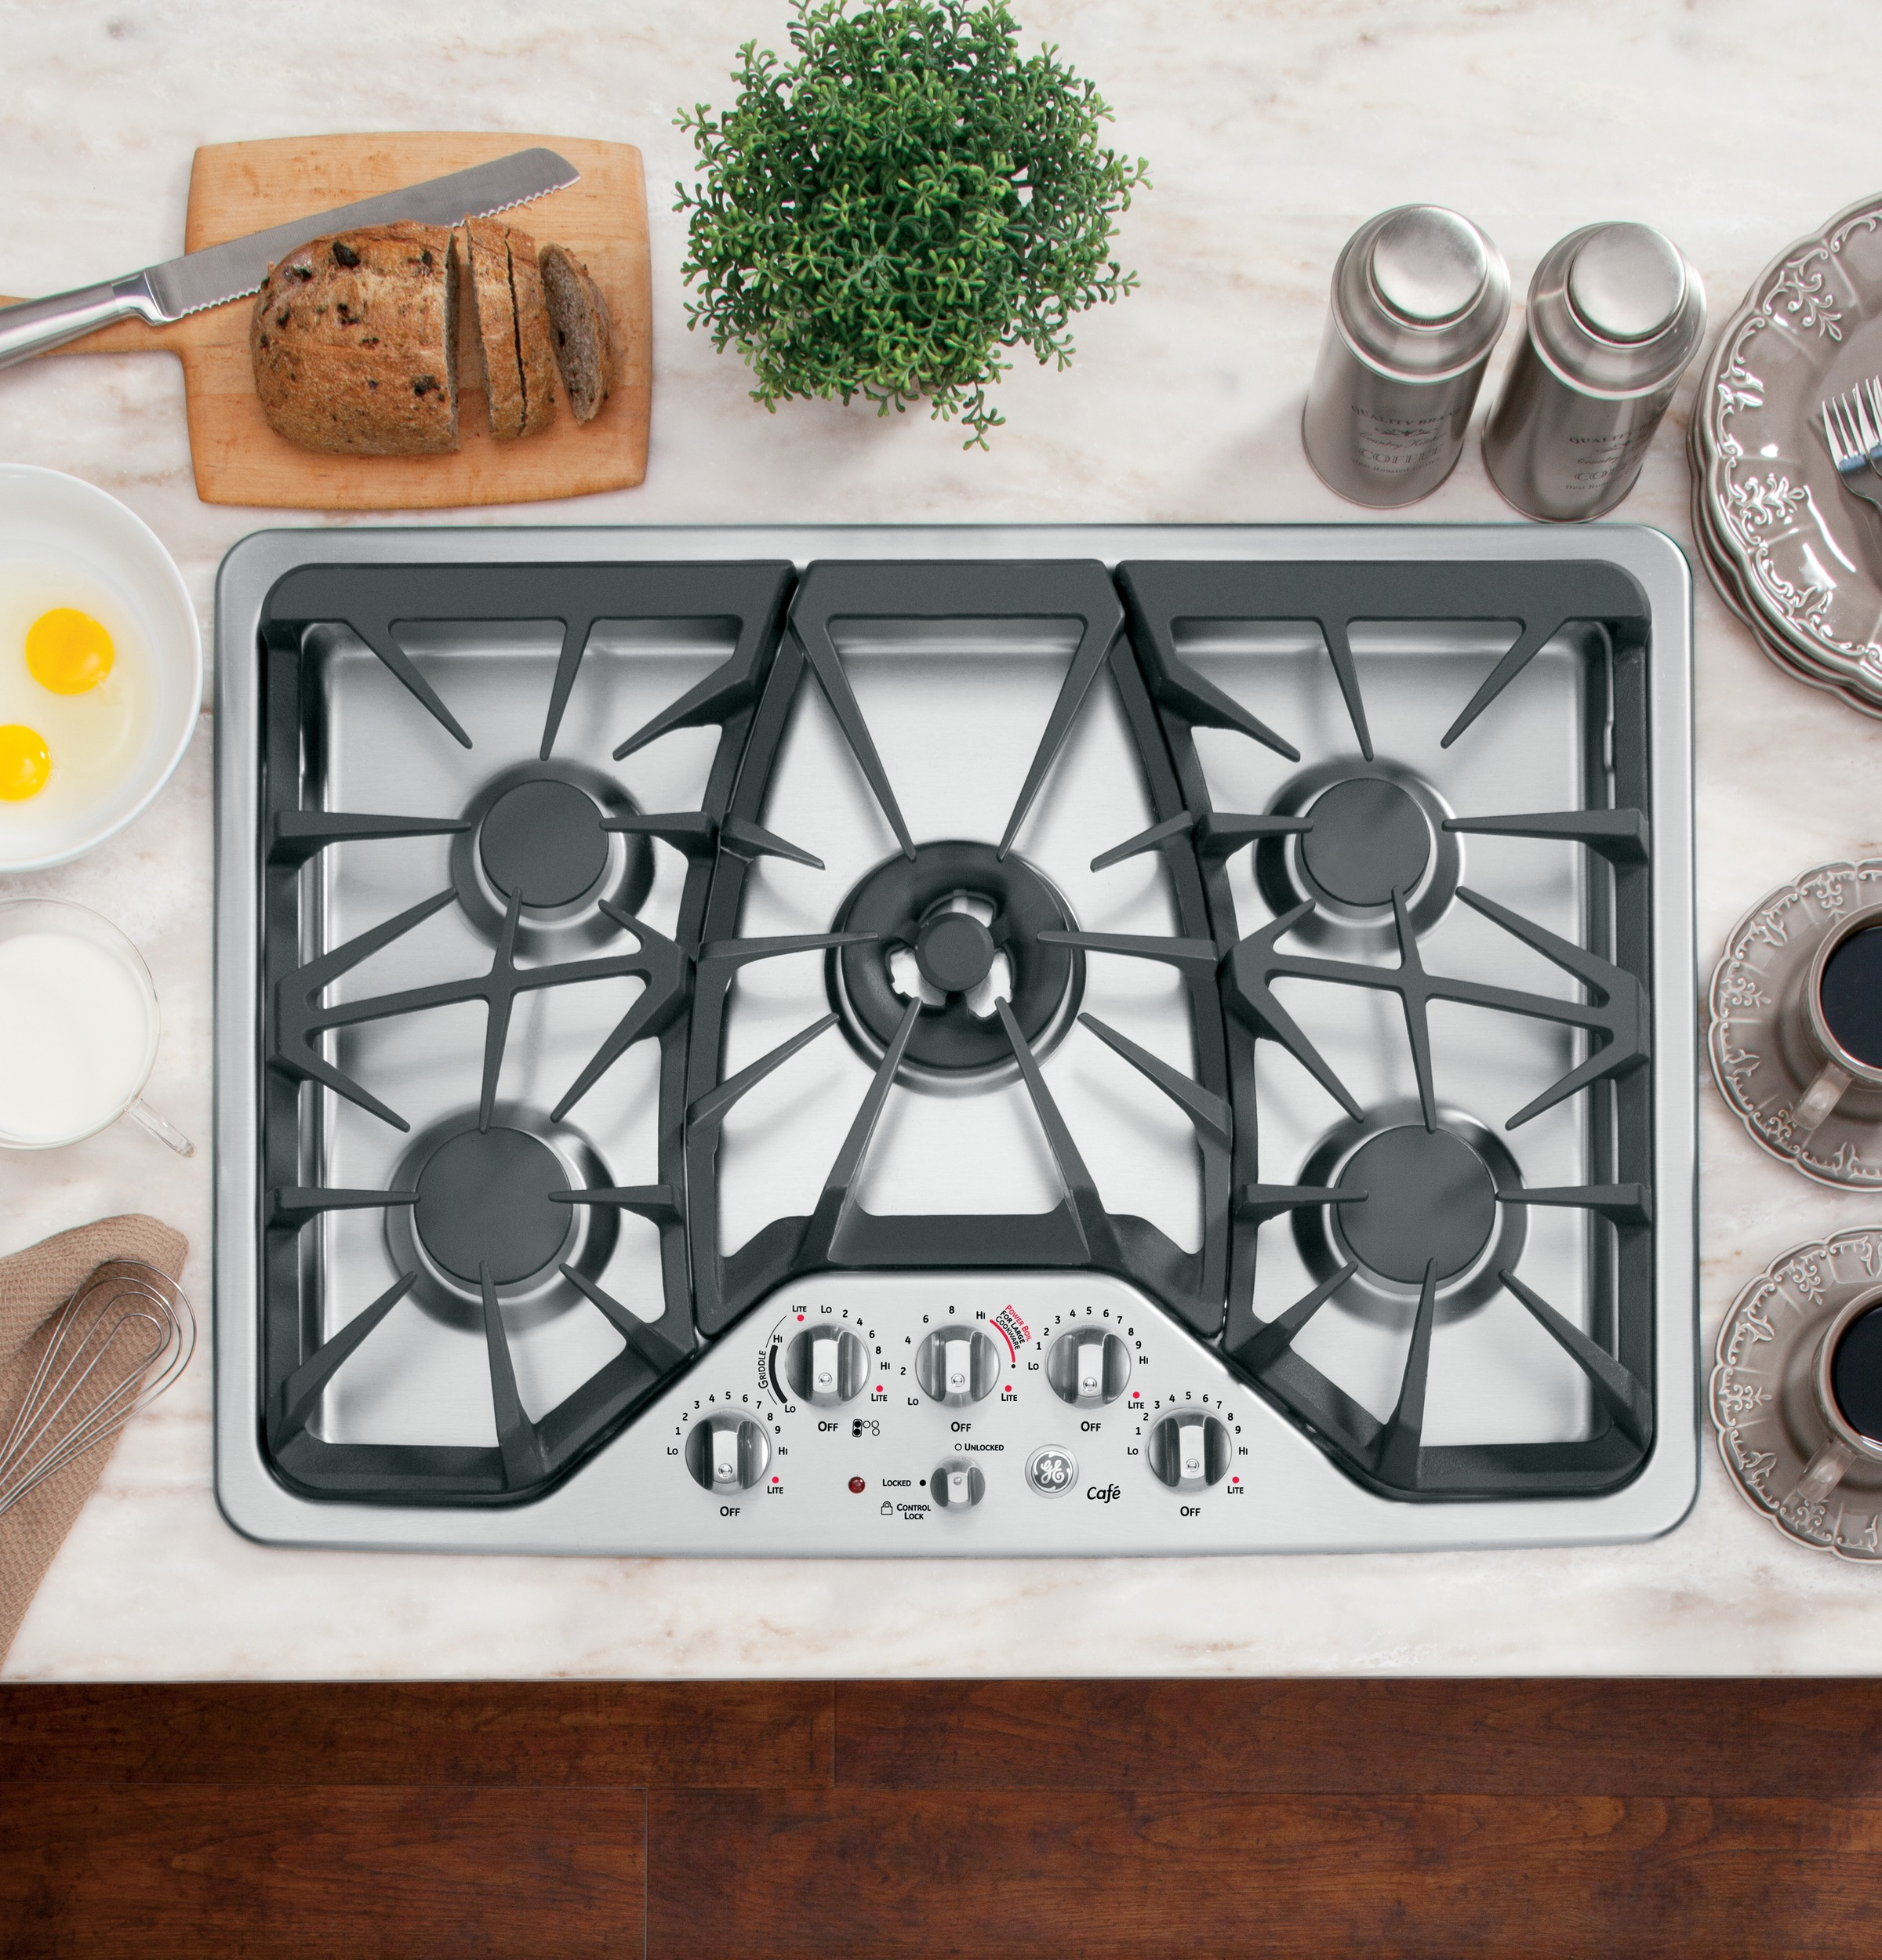 GE Cafe Gas Cooktops